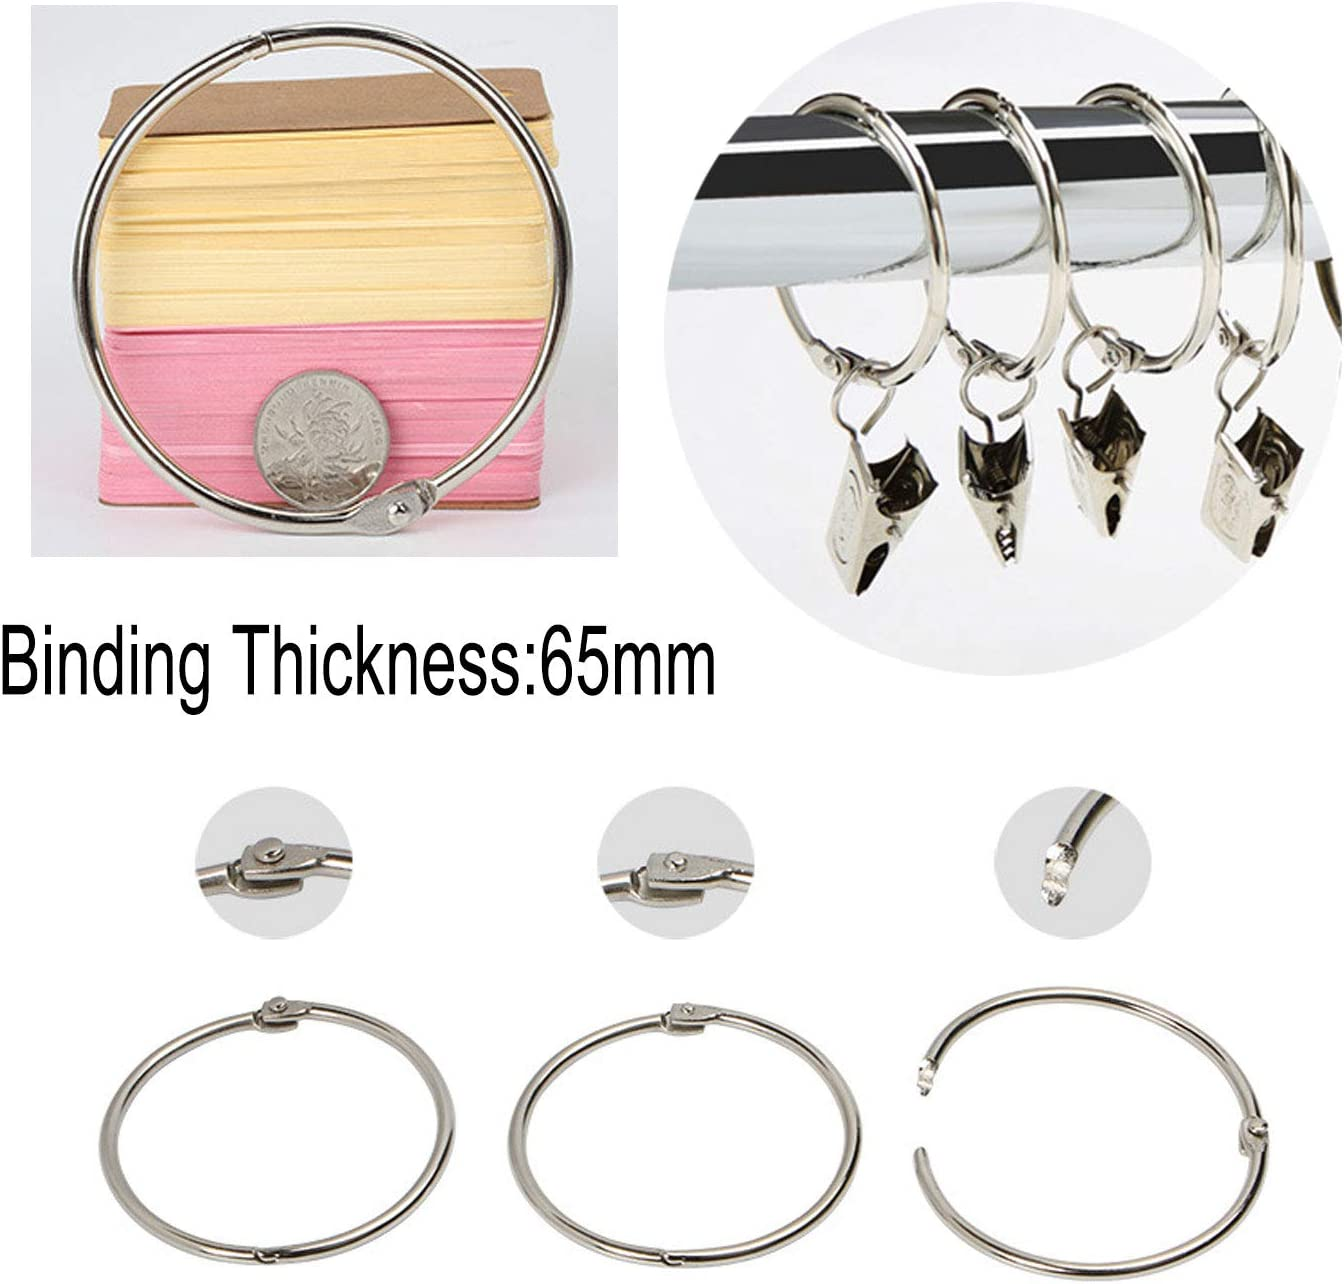 8 Pack Luckkyme Loose Leaf Binder Rings Nickel Plated Book Rings Key Chain Rings 3.5 Inches